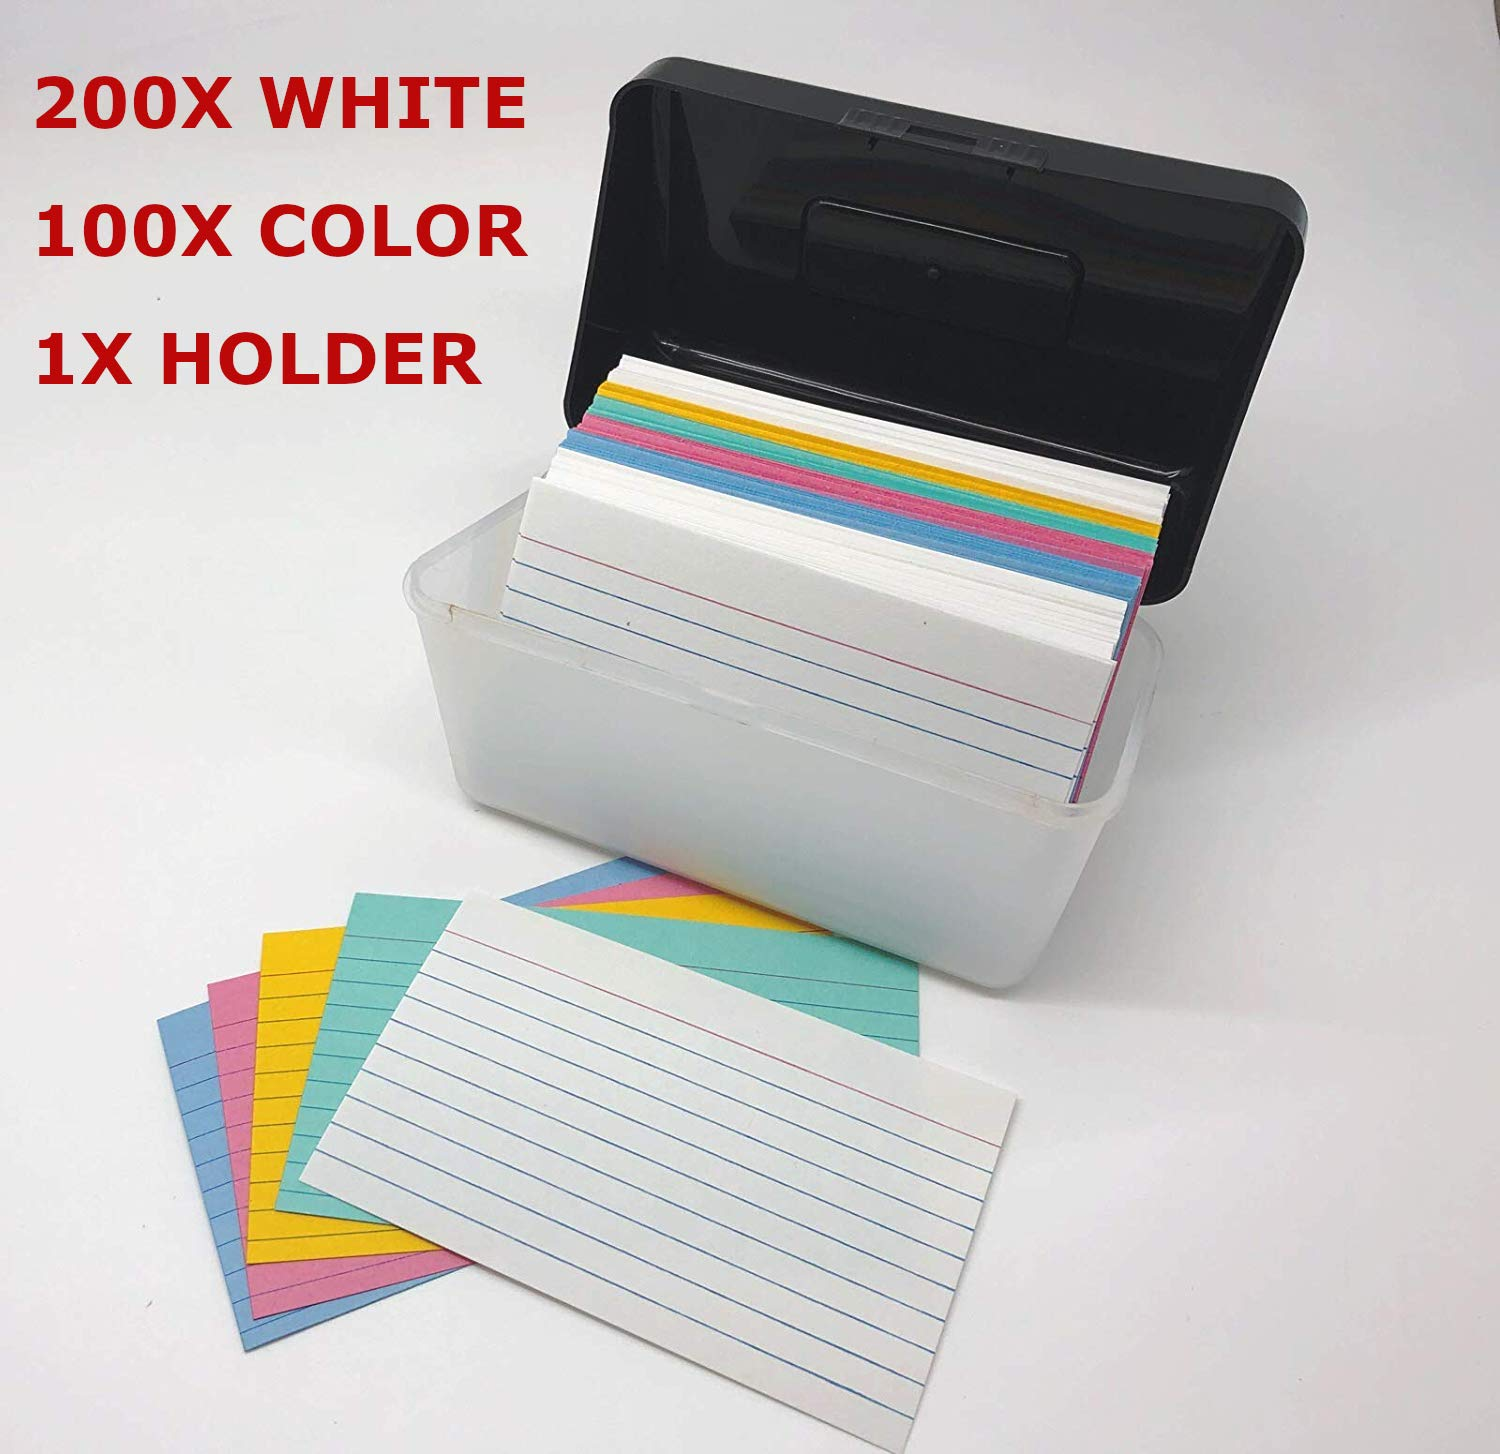 GiftExpress 3x5 inch Index Card Holder Plus 3X5 inch Ruled Index Card: 200 White Cards, 100 Neon Assorted Colors Cards, Great for Office Home School Notes, Learning Flash Cards, Lists, Recipes ECT.